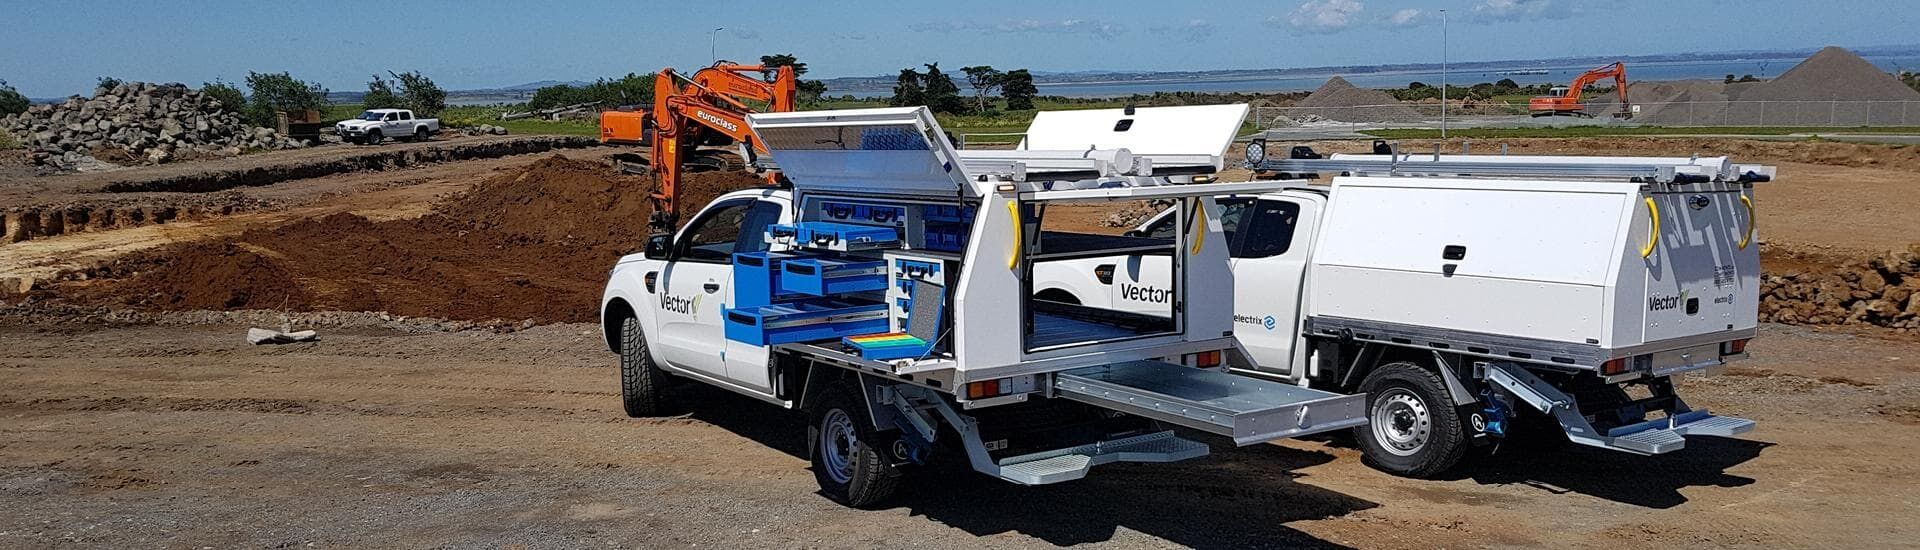 Commercial Vehicle Fitout - Ute Service Body with Tool Boxes